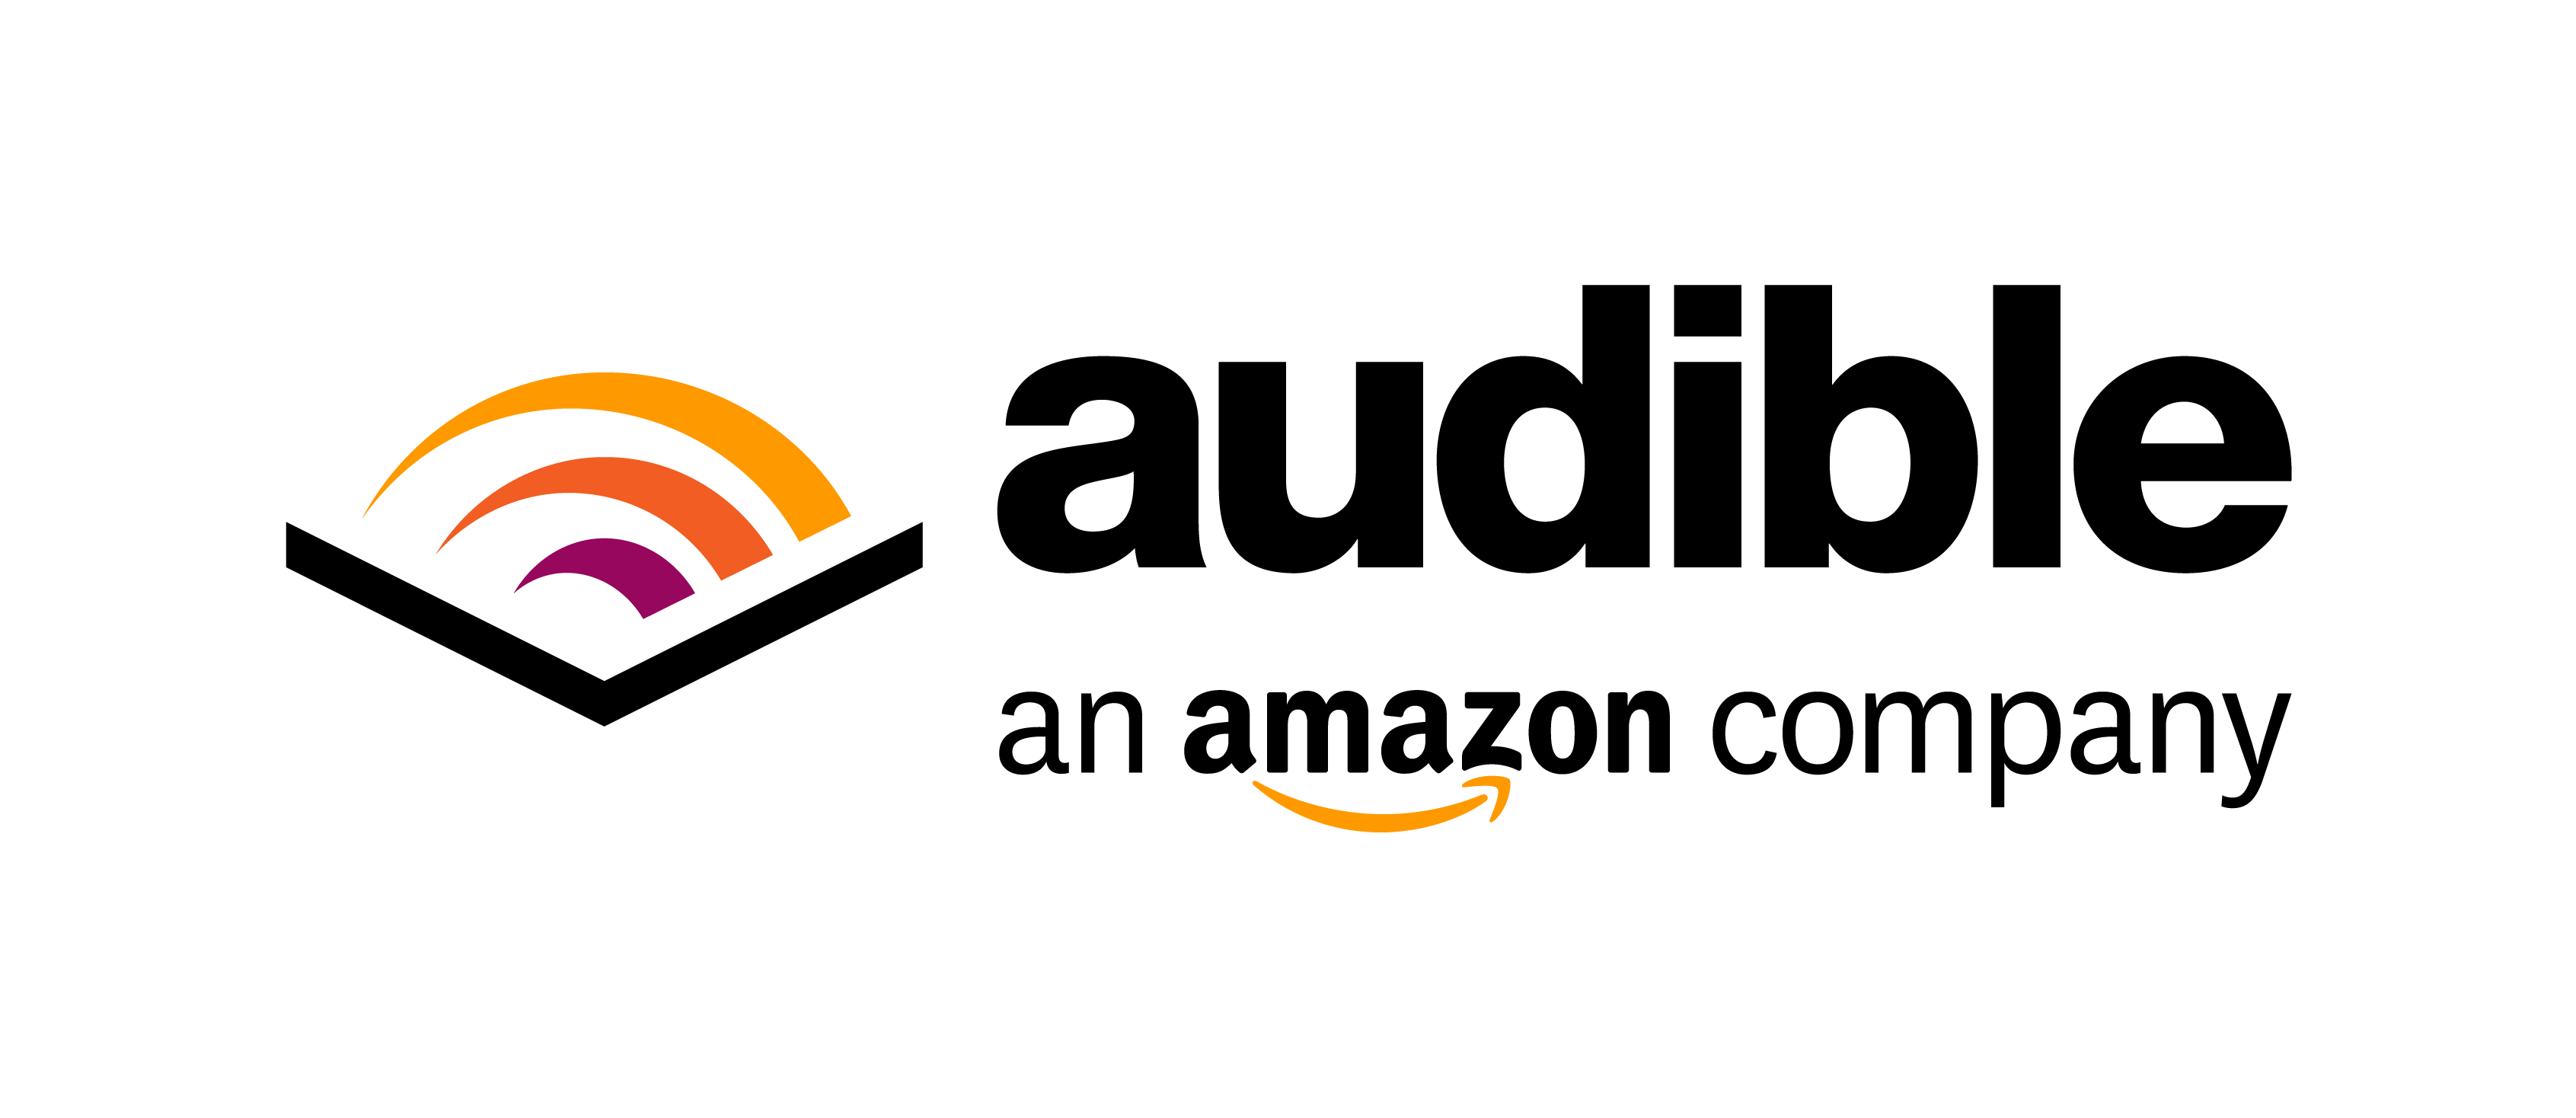 Amazon to soon launch its audio book service Audible in